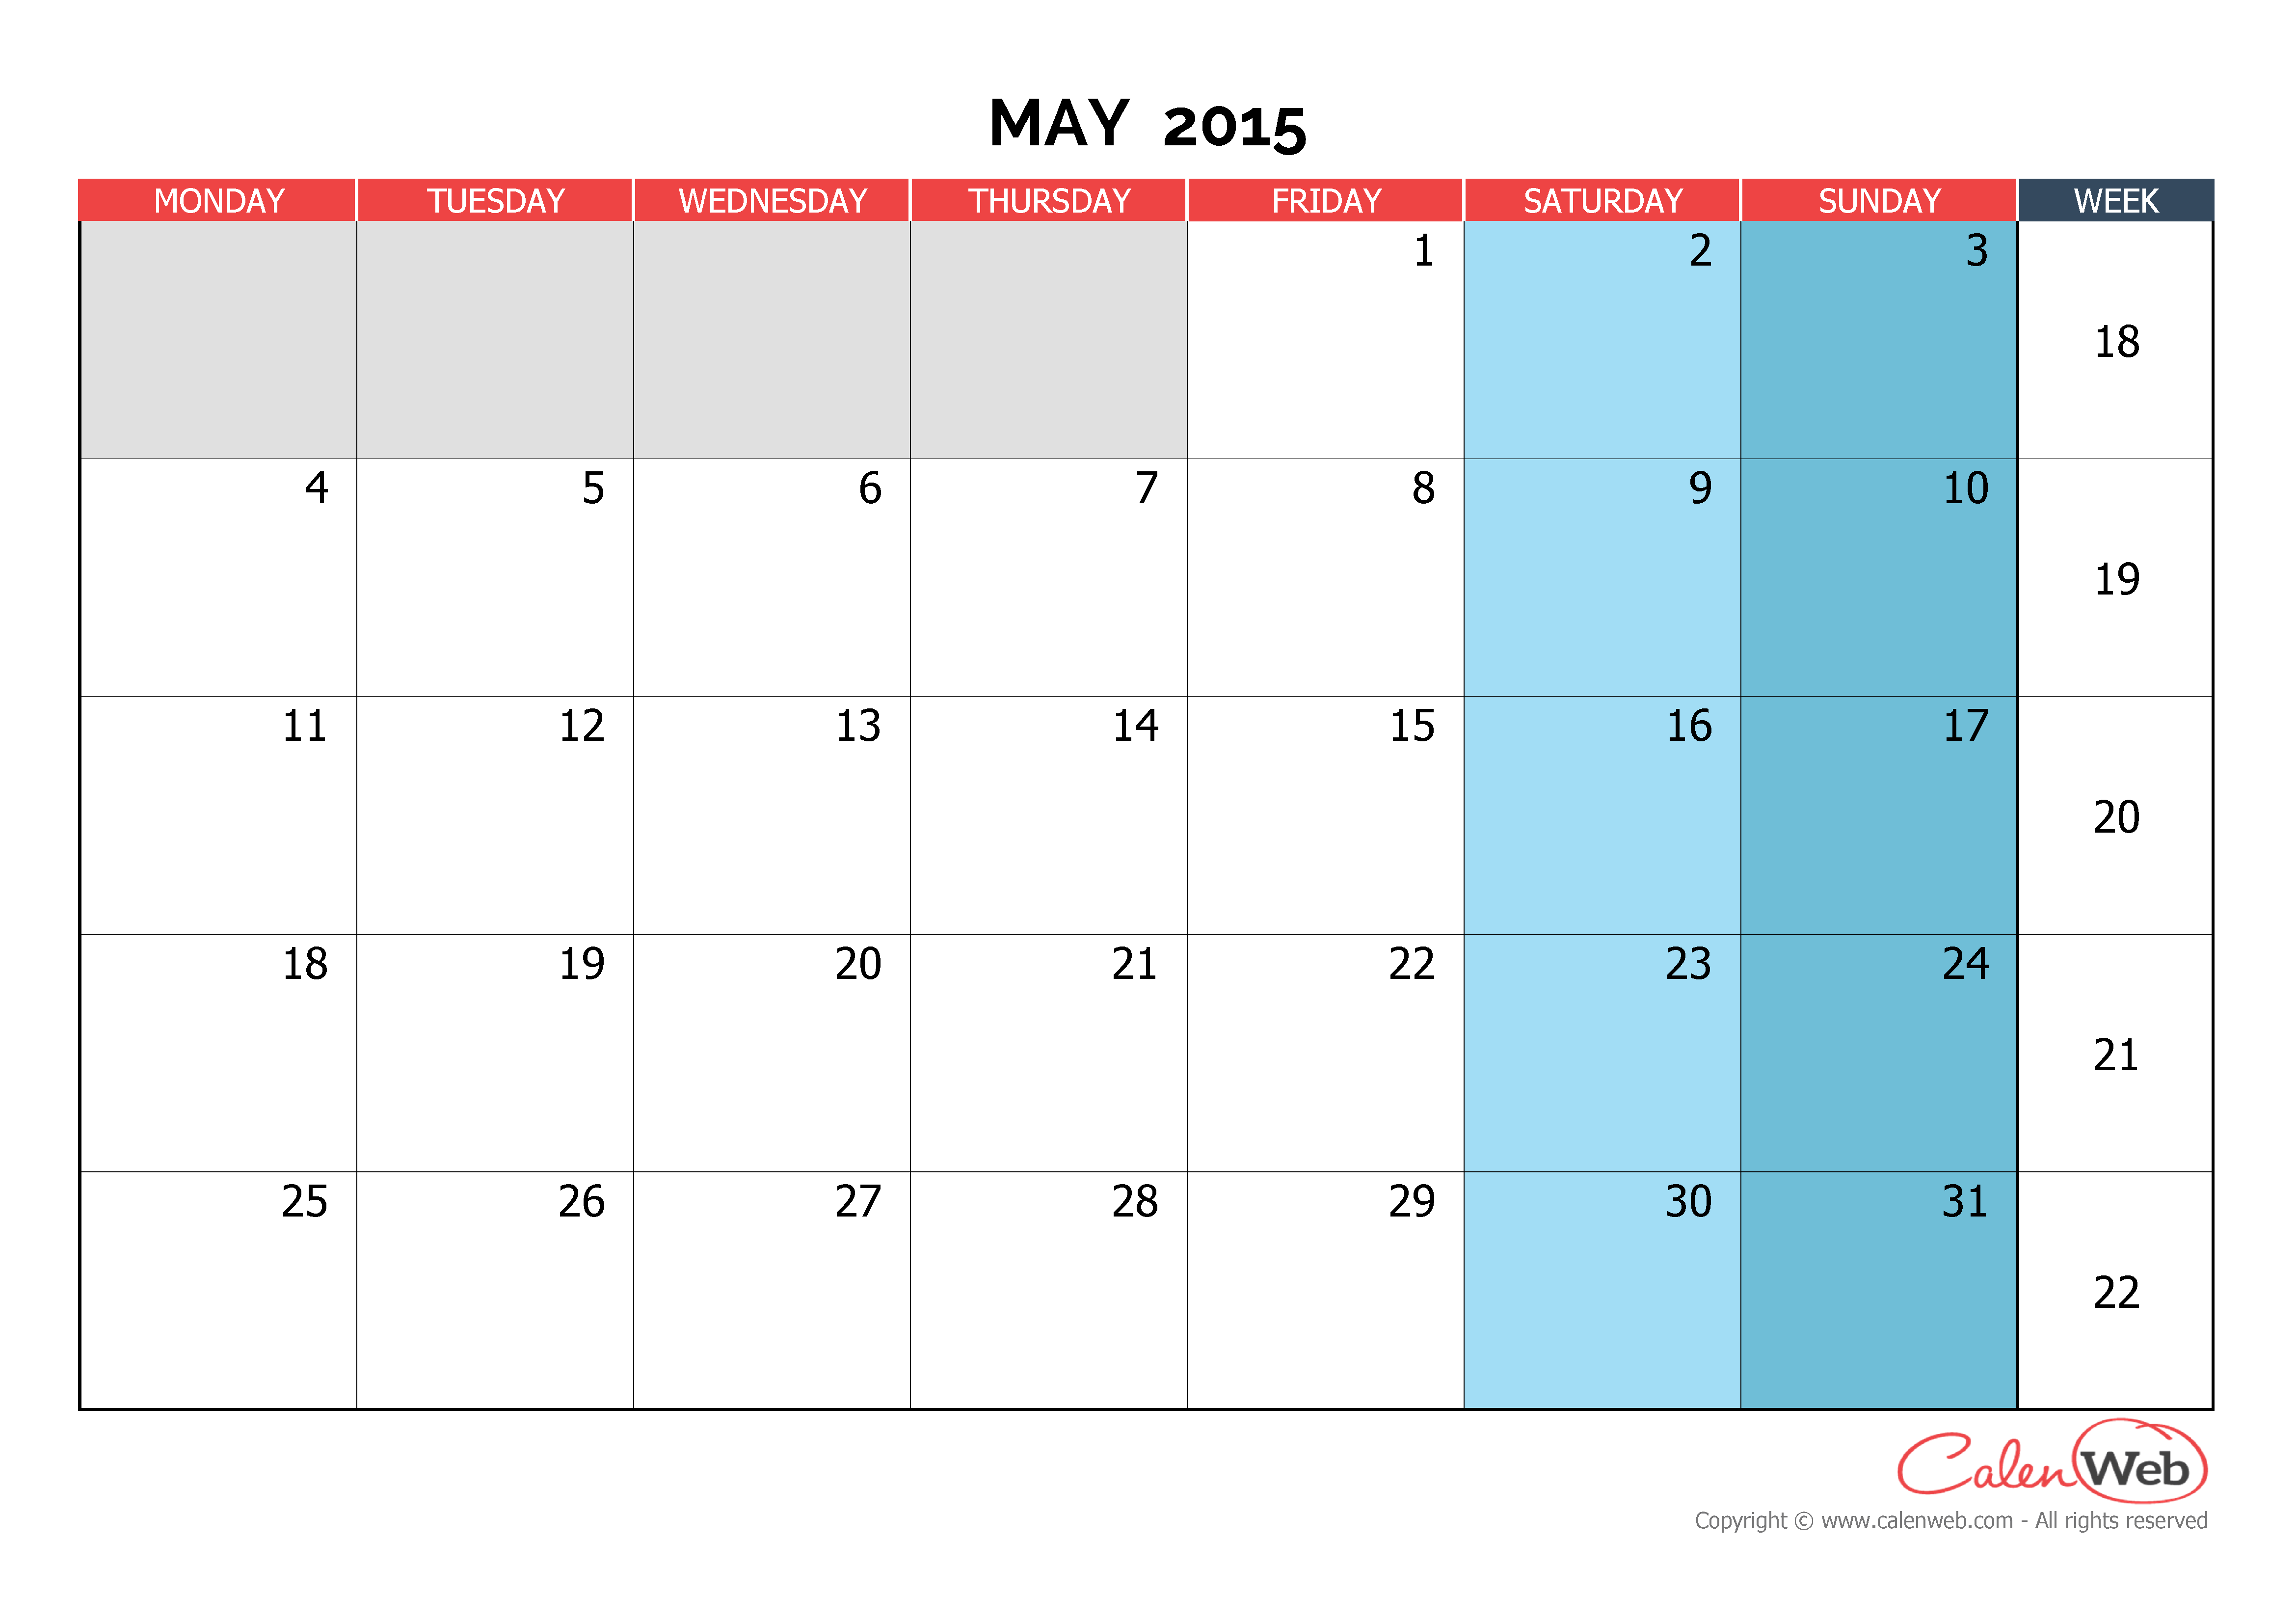 may monthly calendar 2015